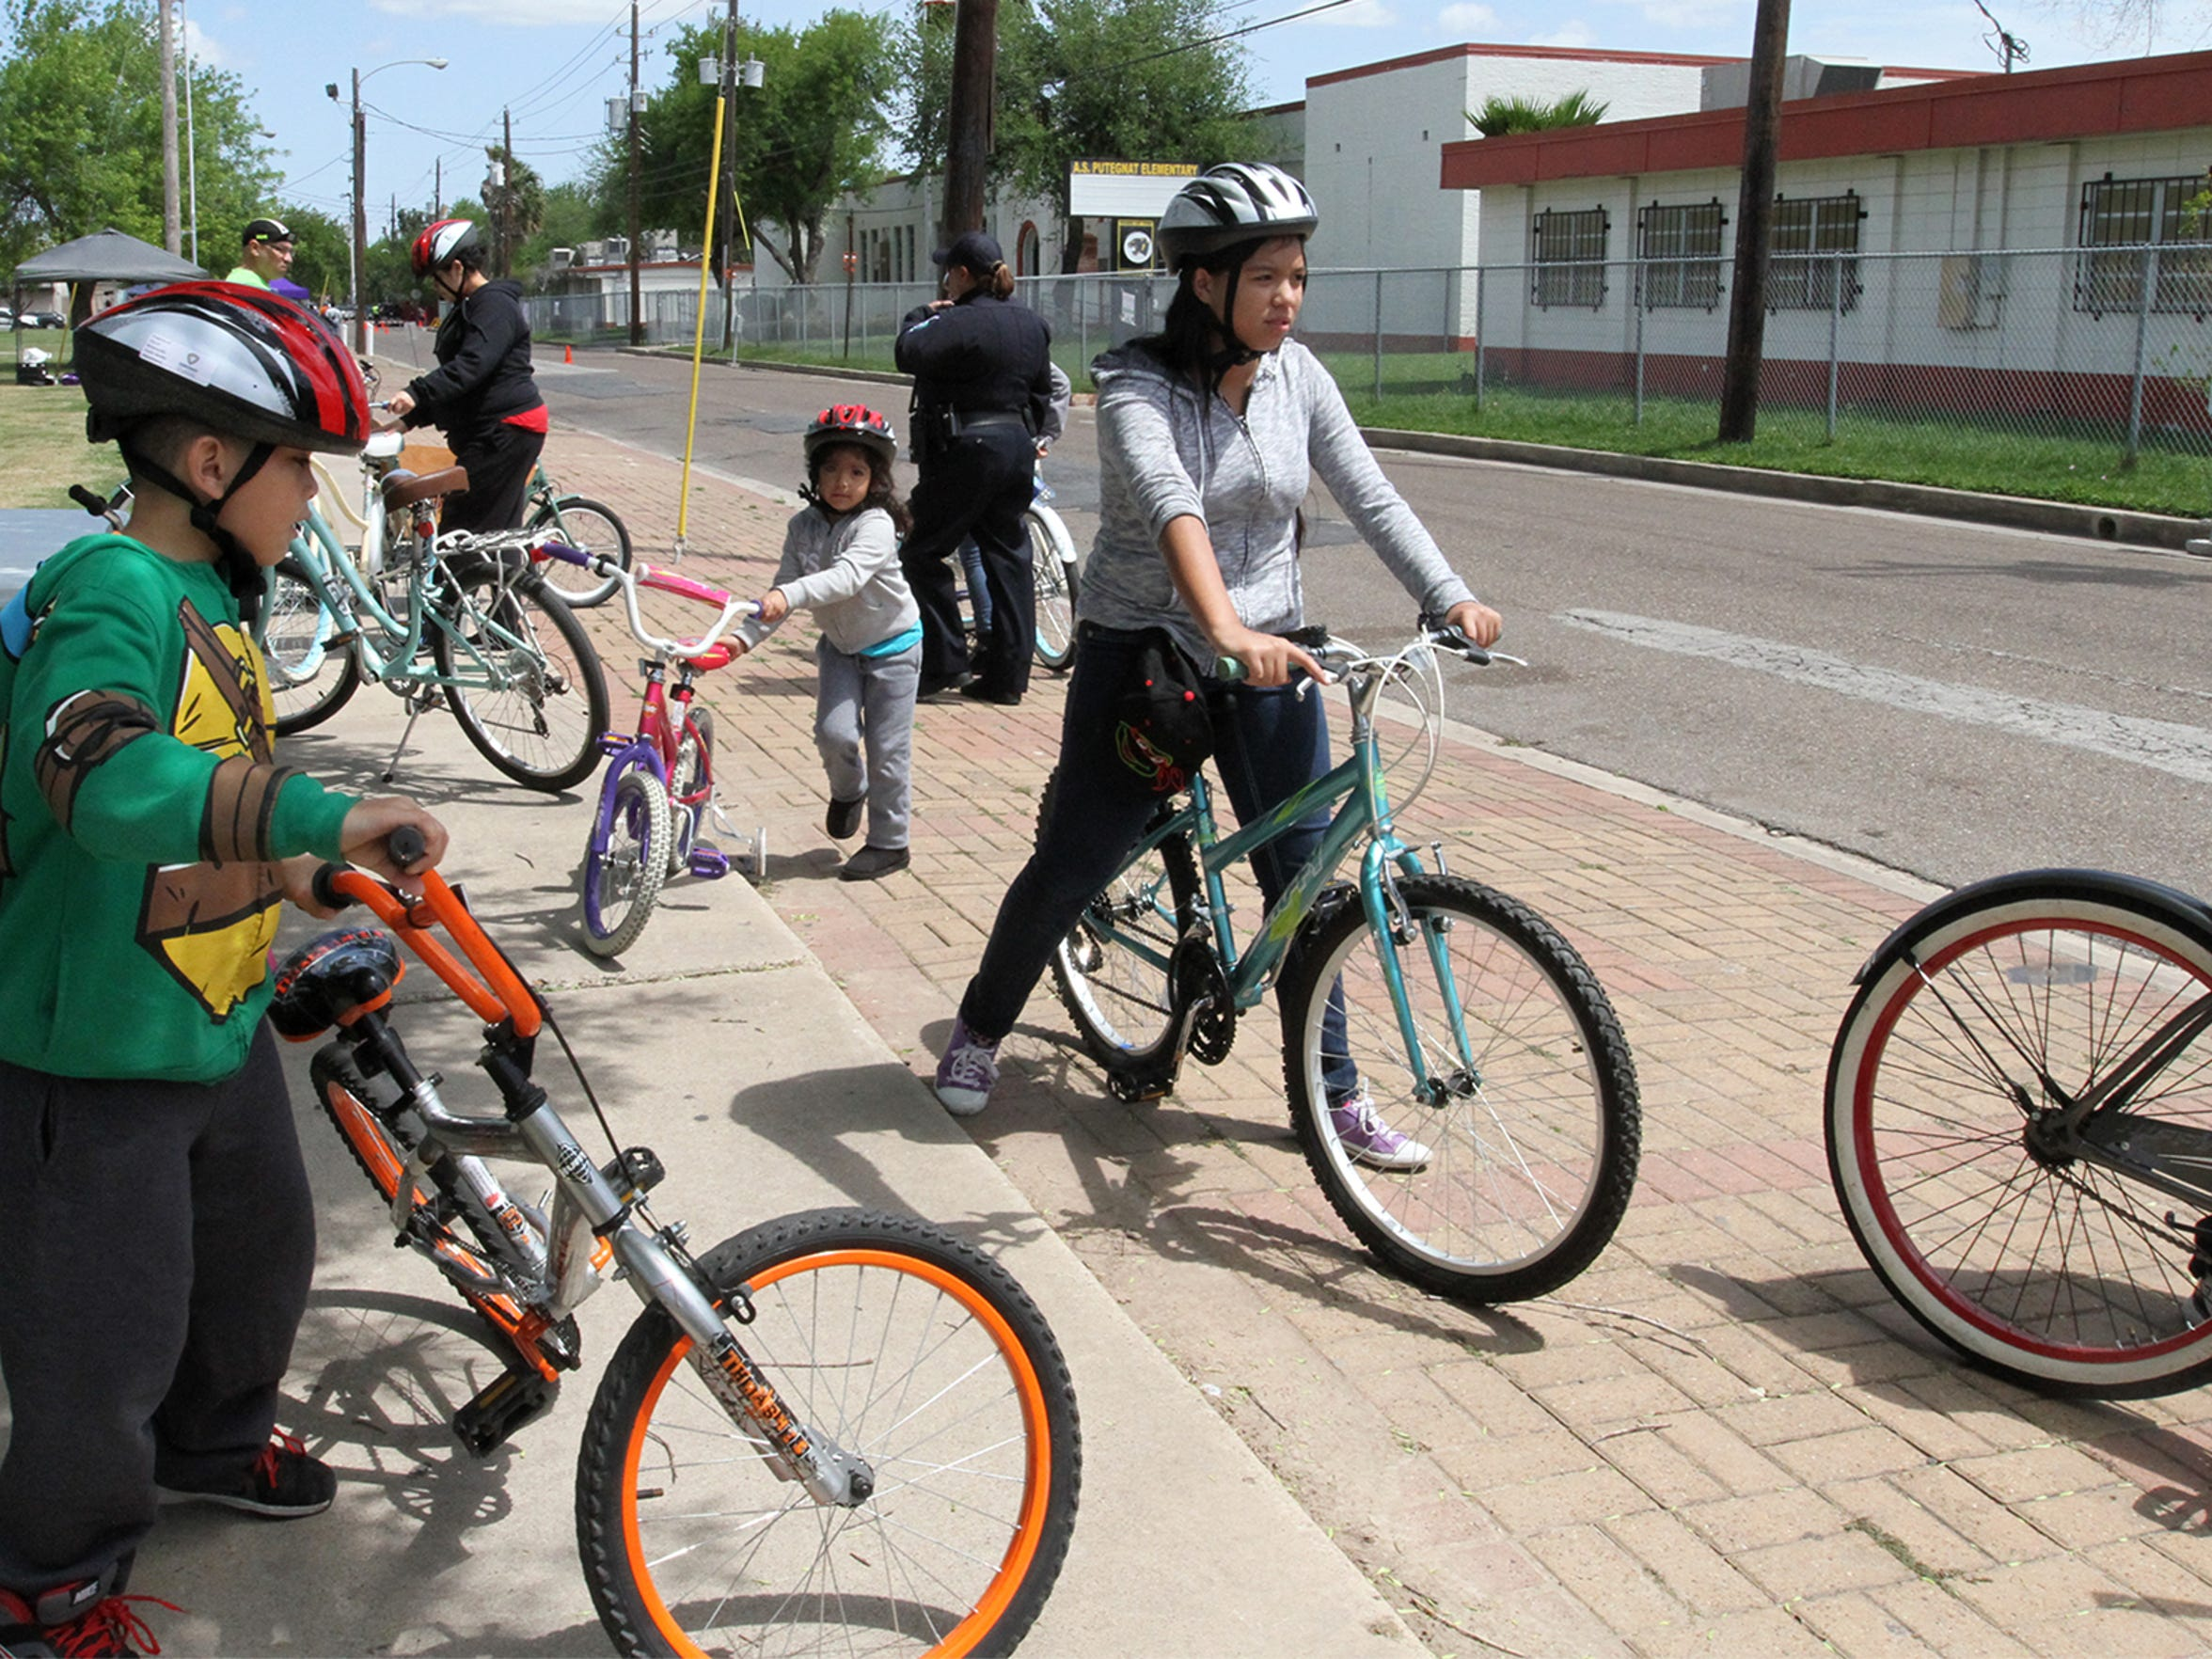 Parents and children start out on a bike ride along closed streets during a CycloBia Sunday, March 20 in Brownsville, TX.